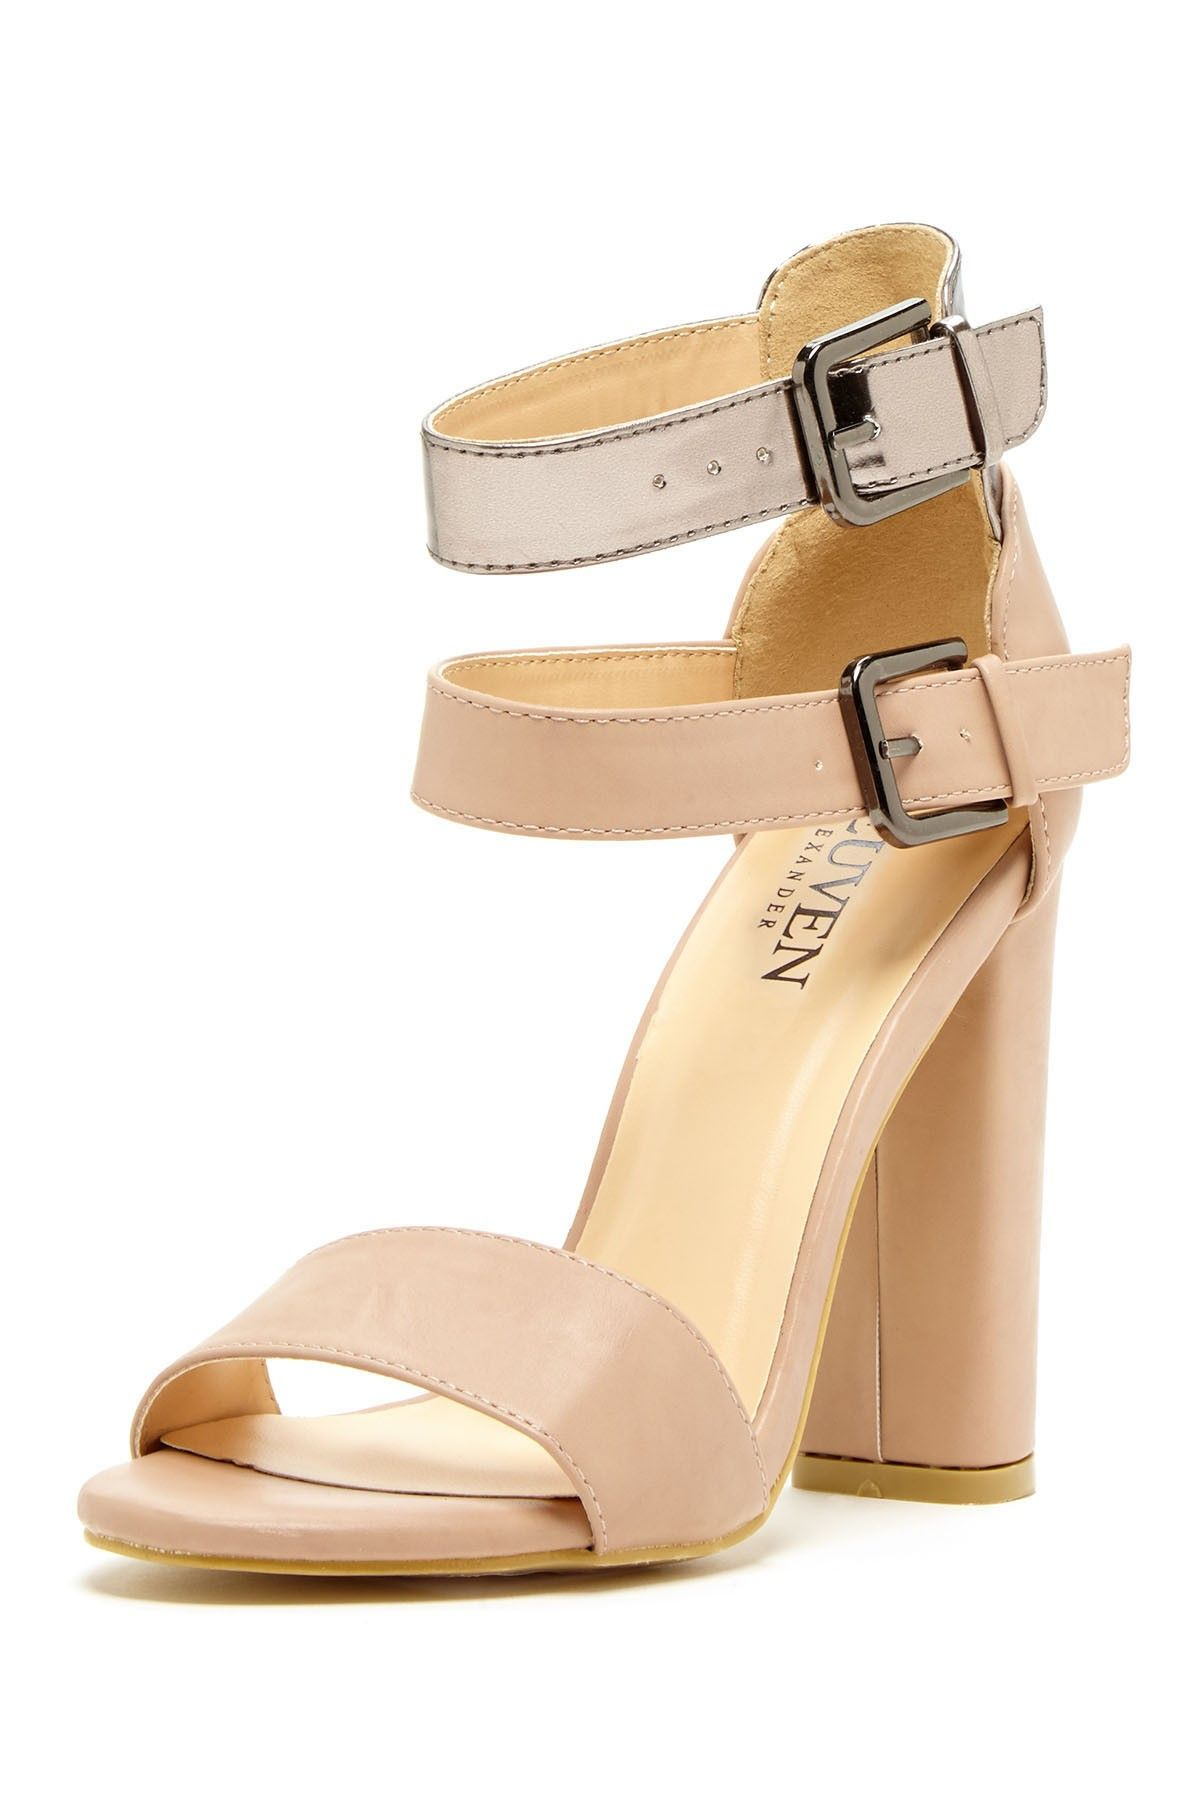 Nude sandals - super chic for spring